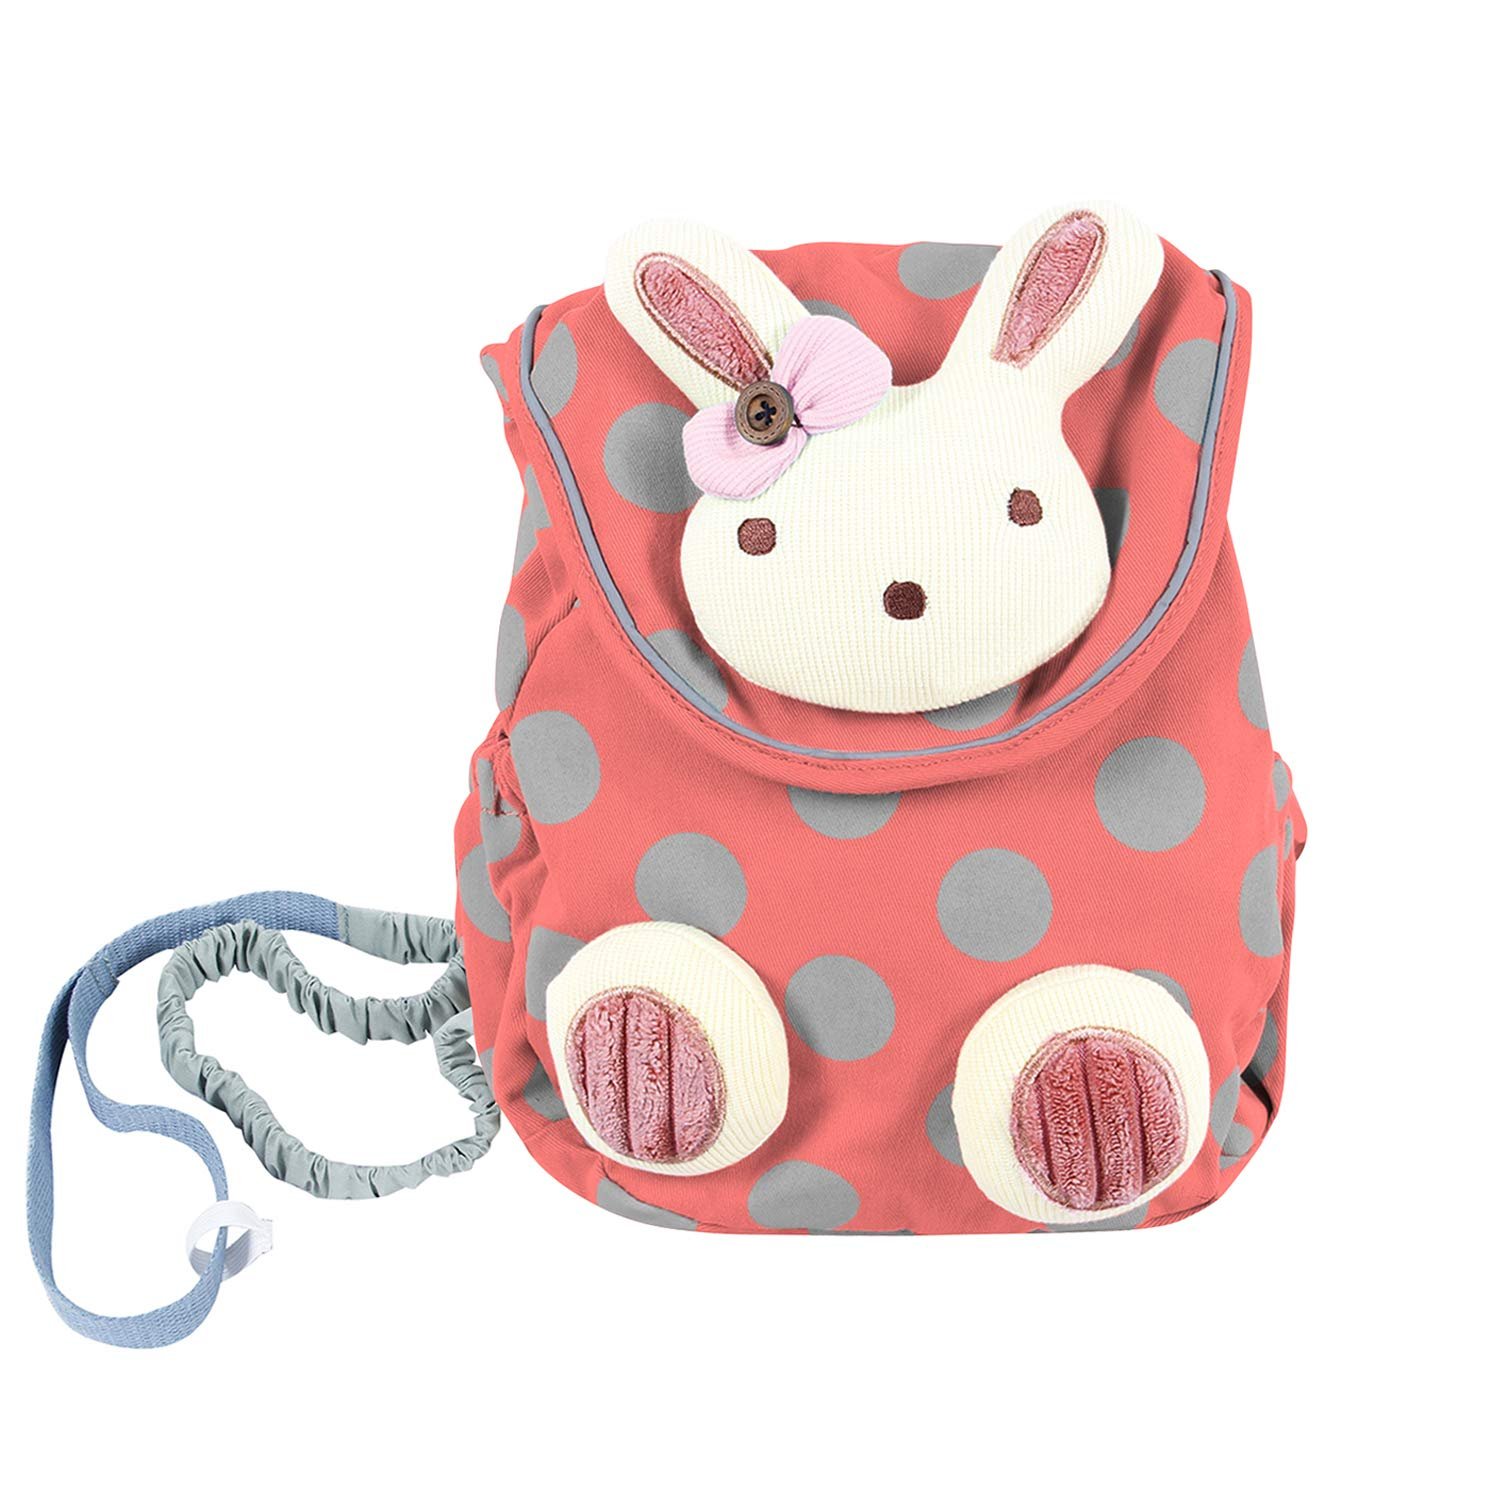 Labebe Girl Backpack with Harness, Pink Bunny Backpack with Anti-lost Leash for Baby 1-3 Years, Pink Backpack/Baby Girl Bag/Baby Girl Backpack/Pink Toddler Backpack/Girl Toddler Backpack/Baby Food Bag HY2014WXCG-172-2